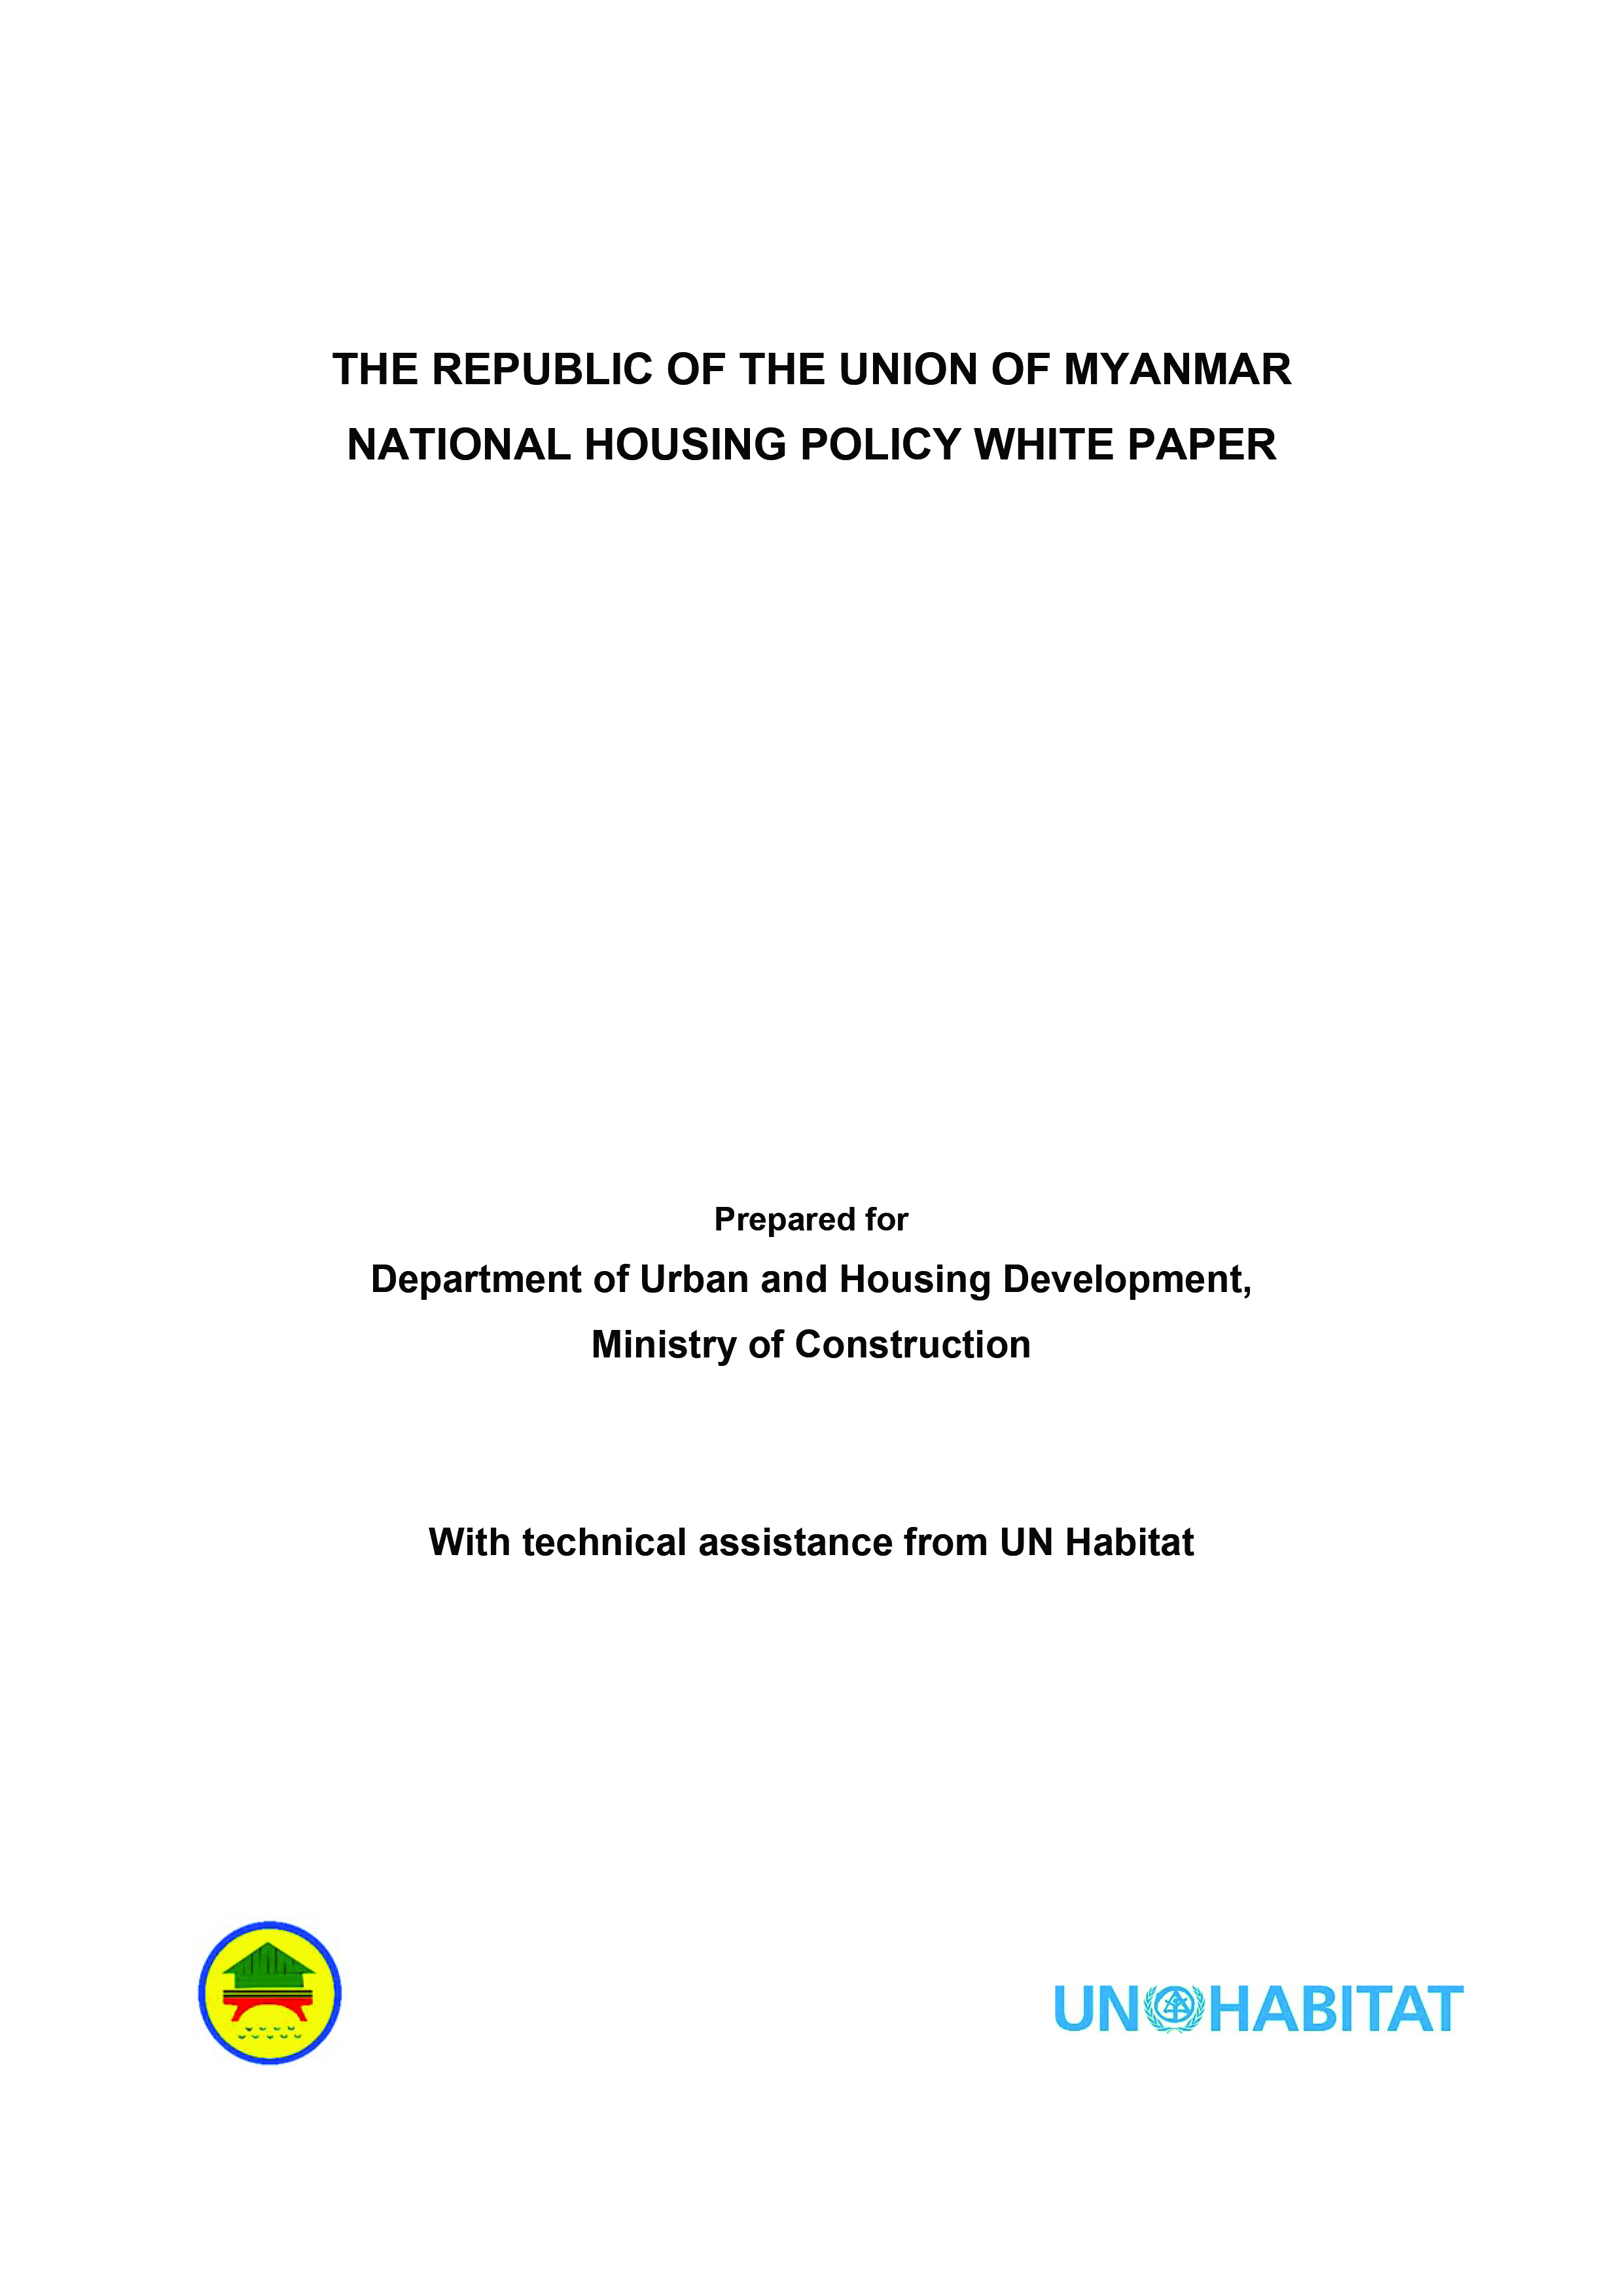 National Housing Policy White Paper